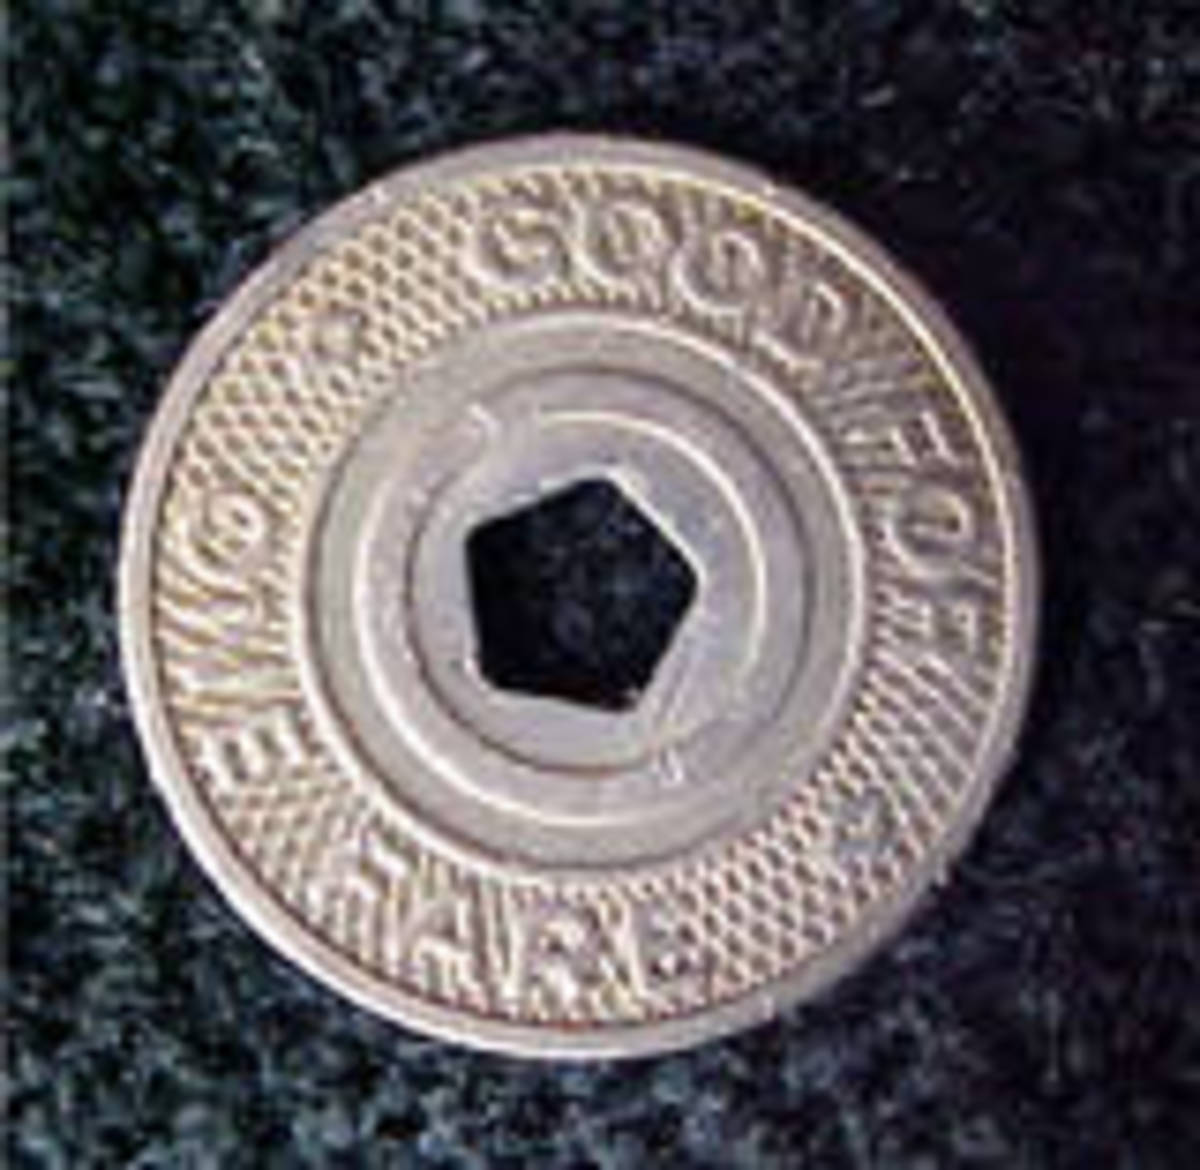 The reverse side of the same coin.